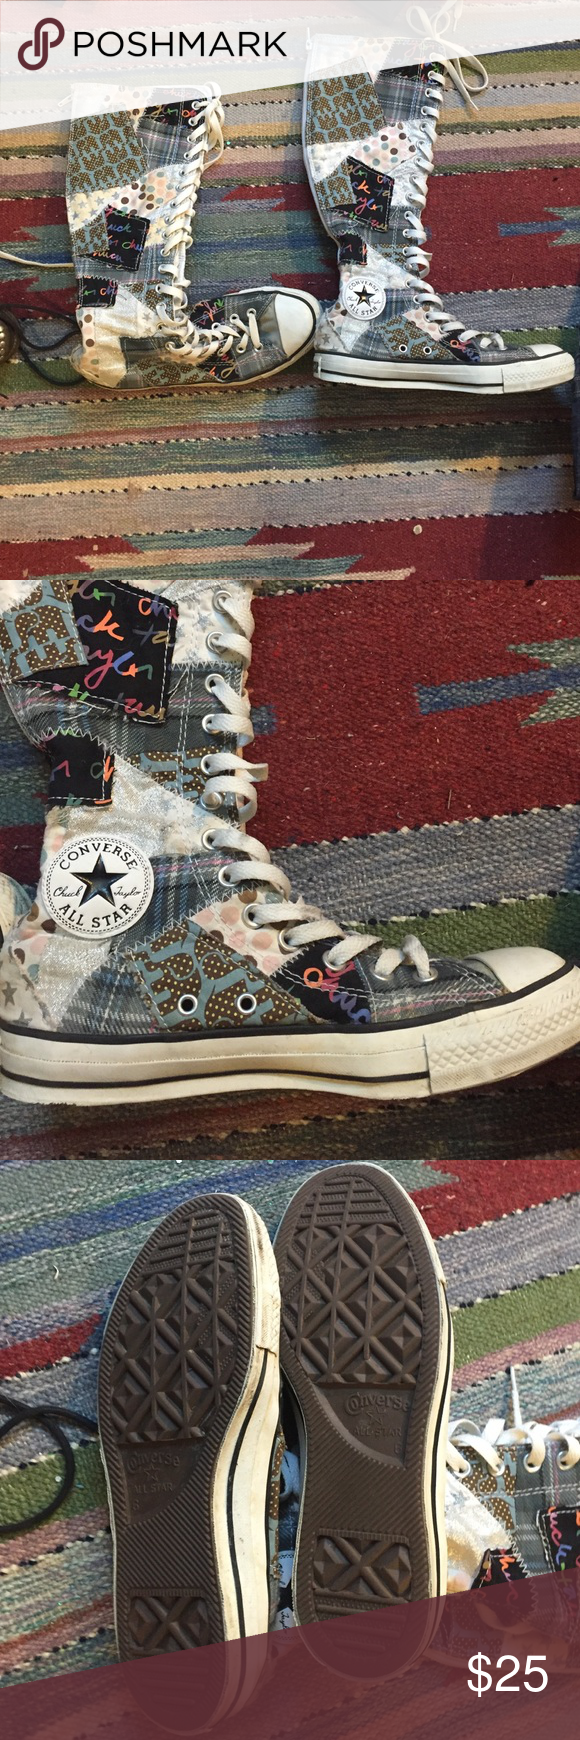 Converse Tall converse lace ups in quilted pattern. Worn twice. Full Back zipper. Converse Shoes Lace Up Boots